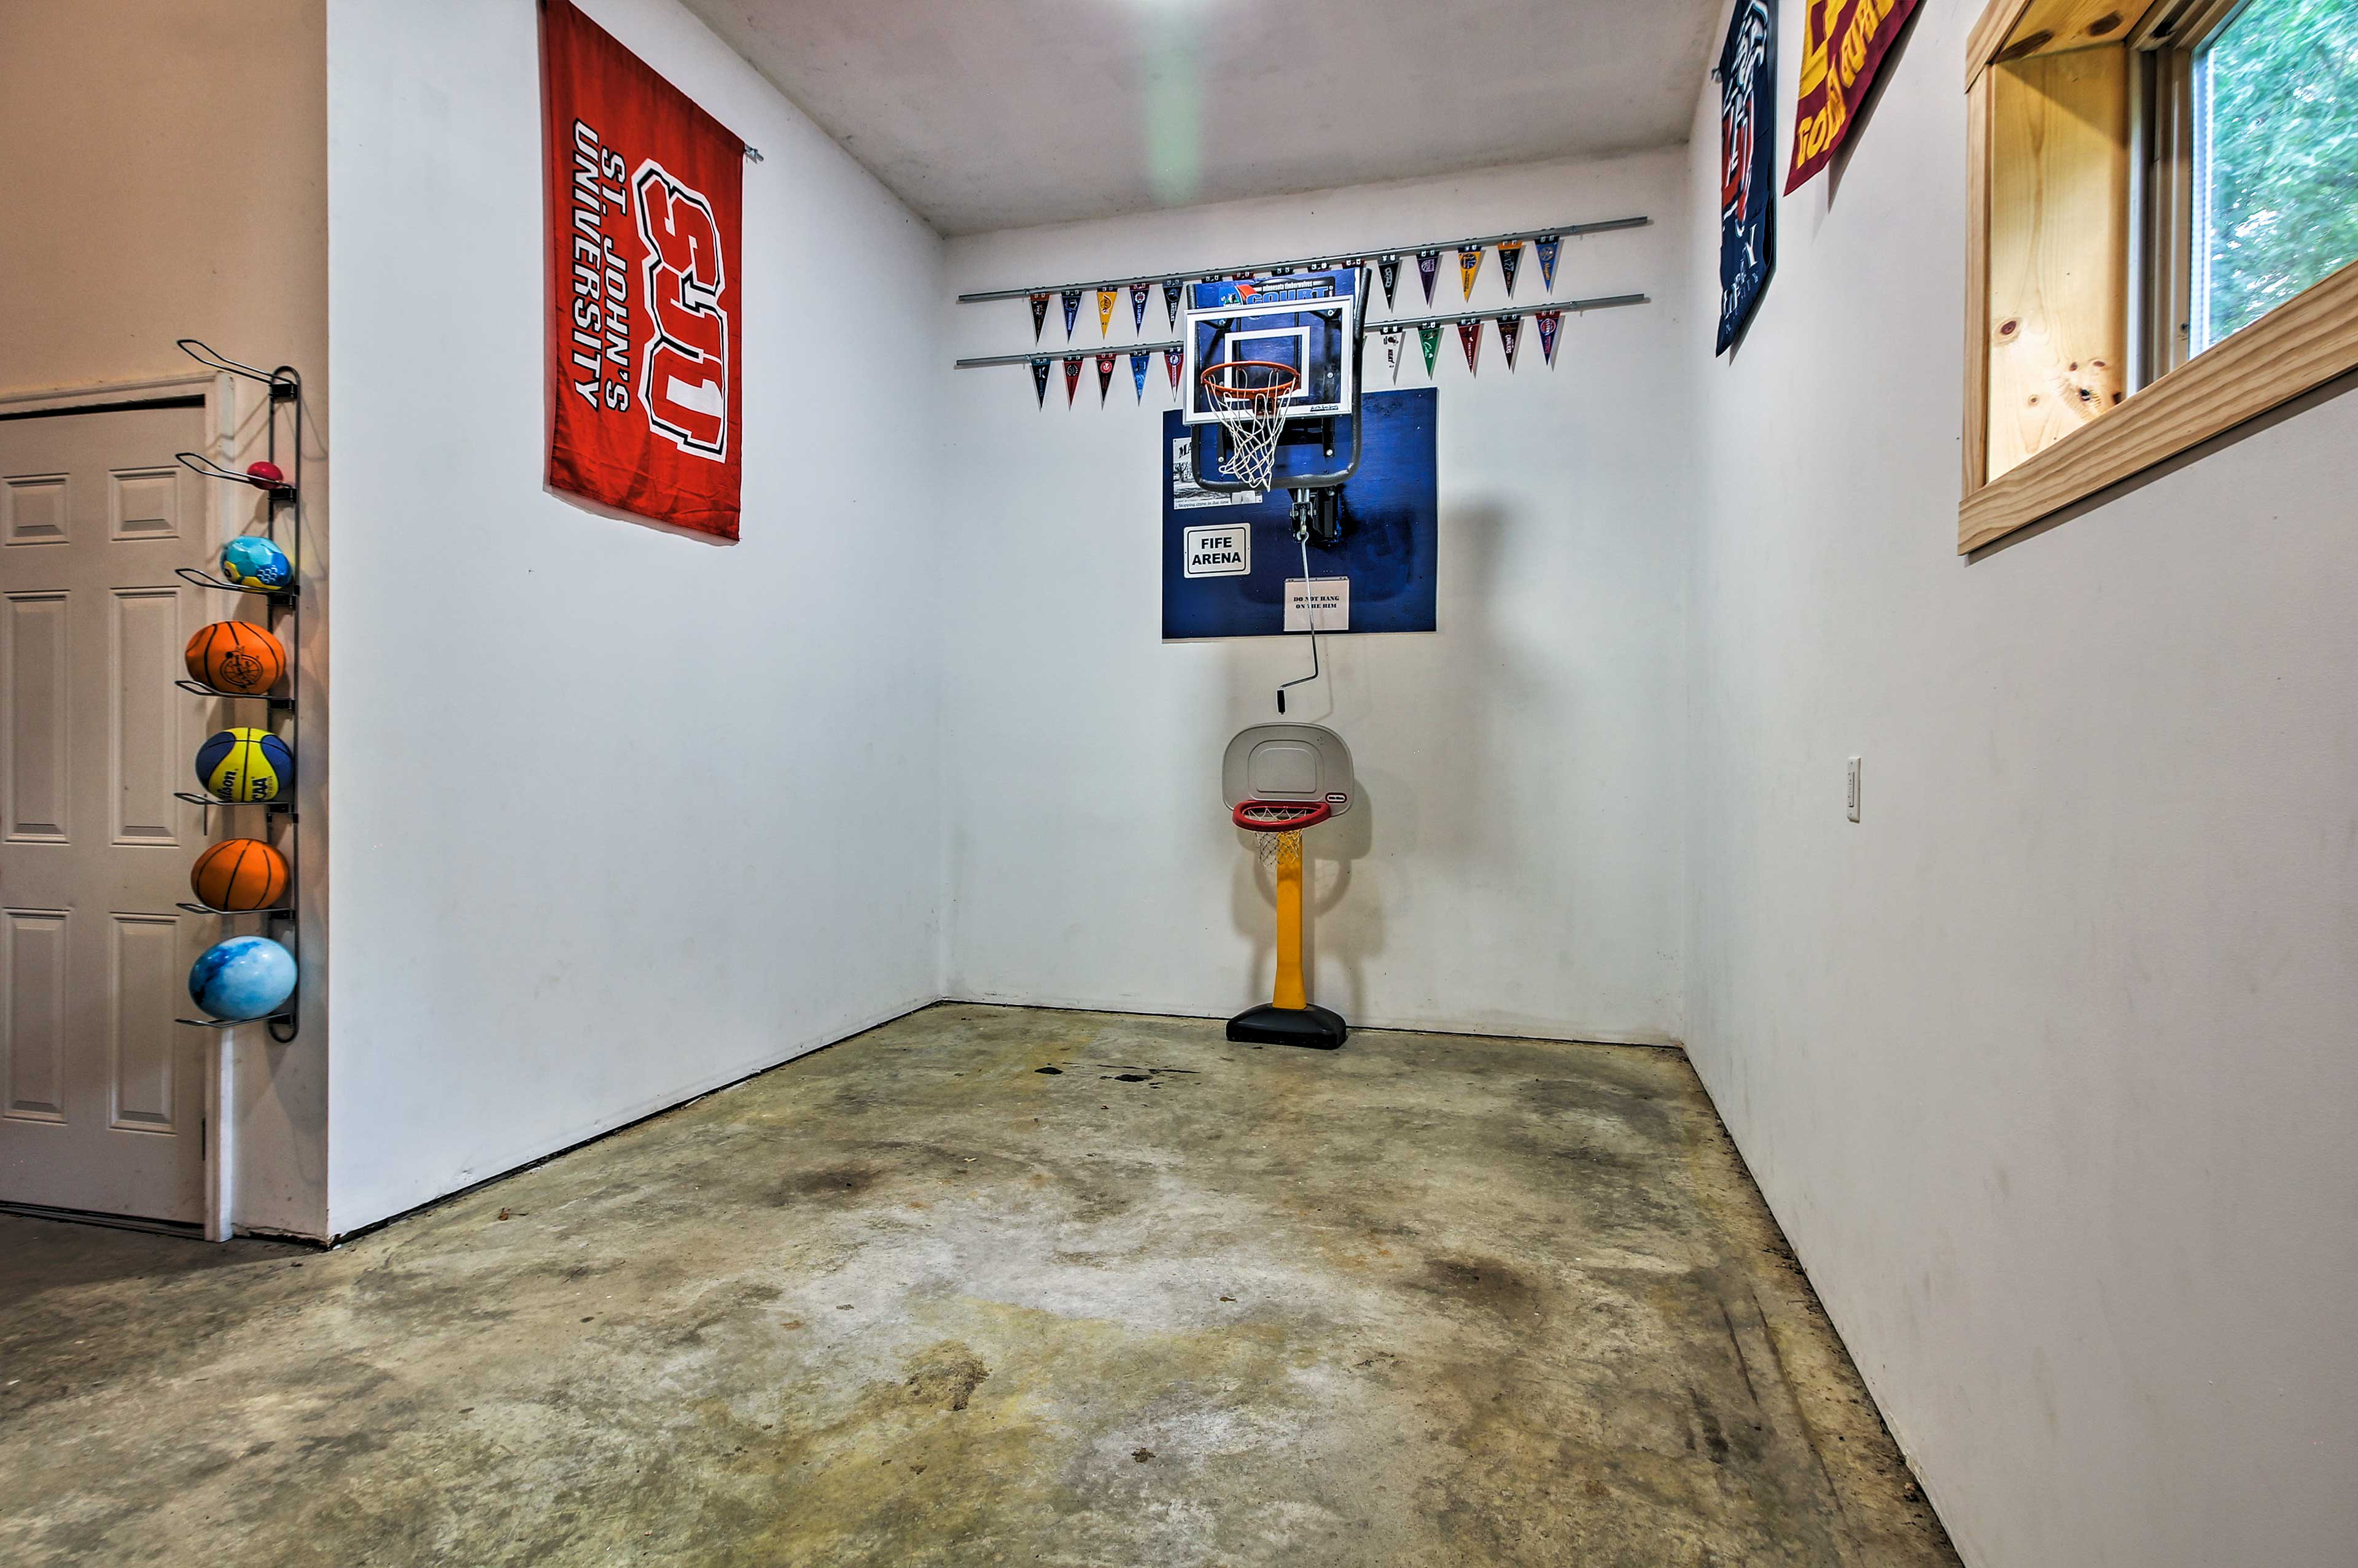 Shoot some hoops at the mini indoor basketball court.